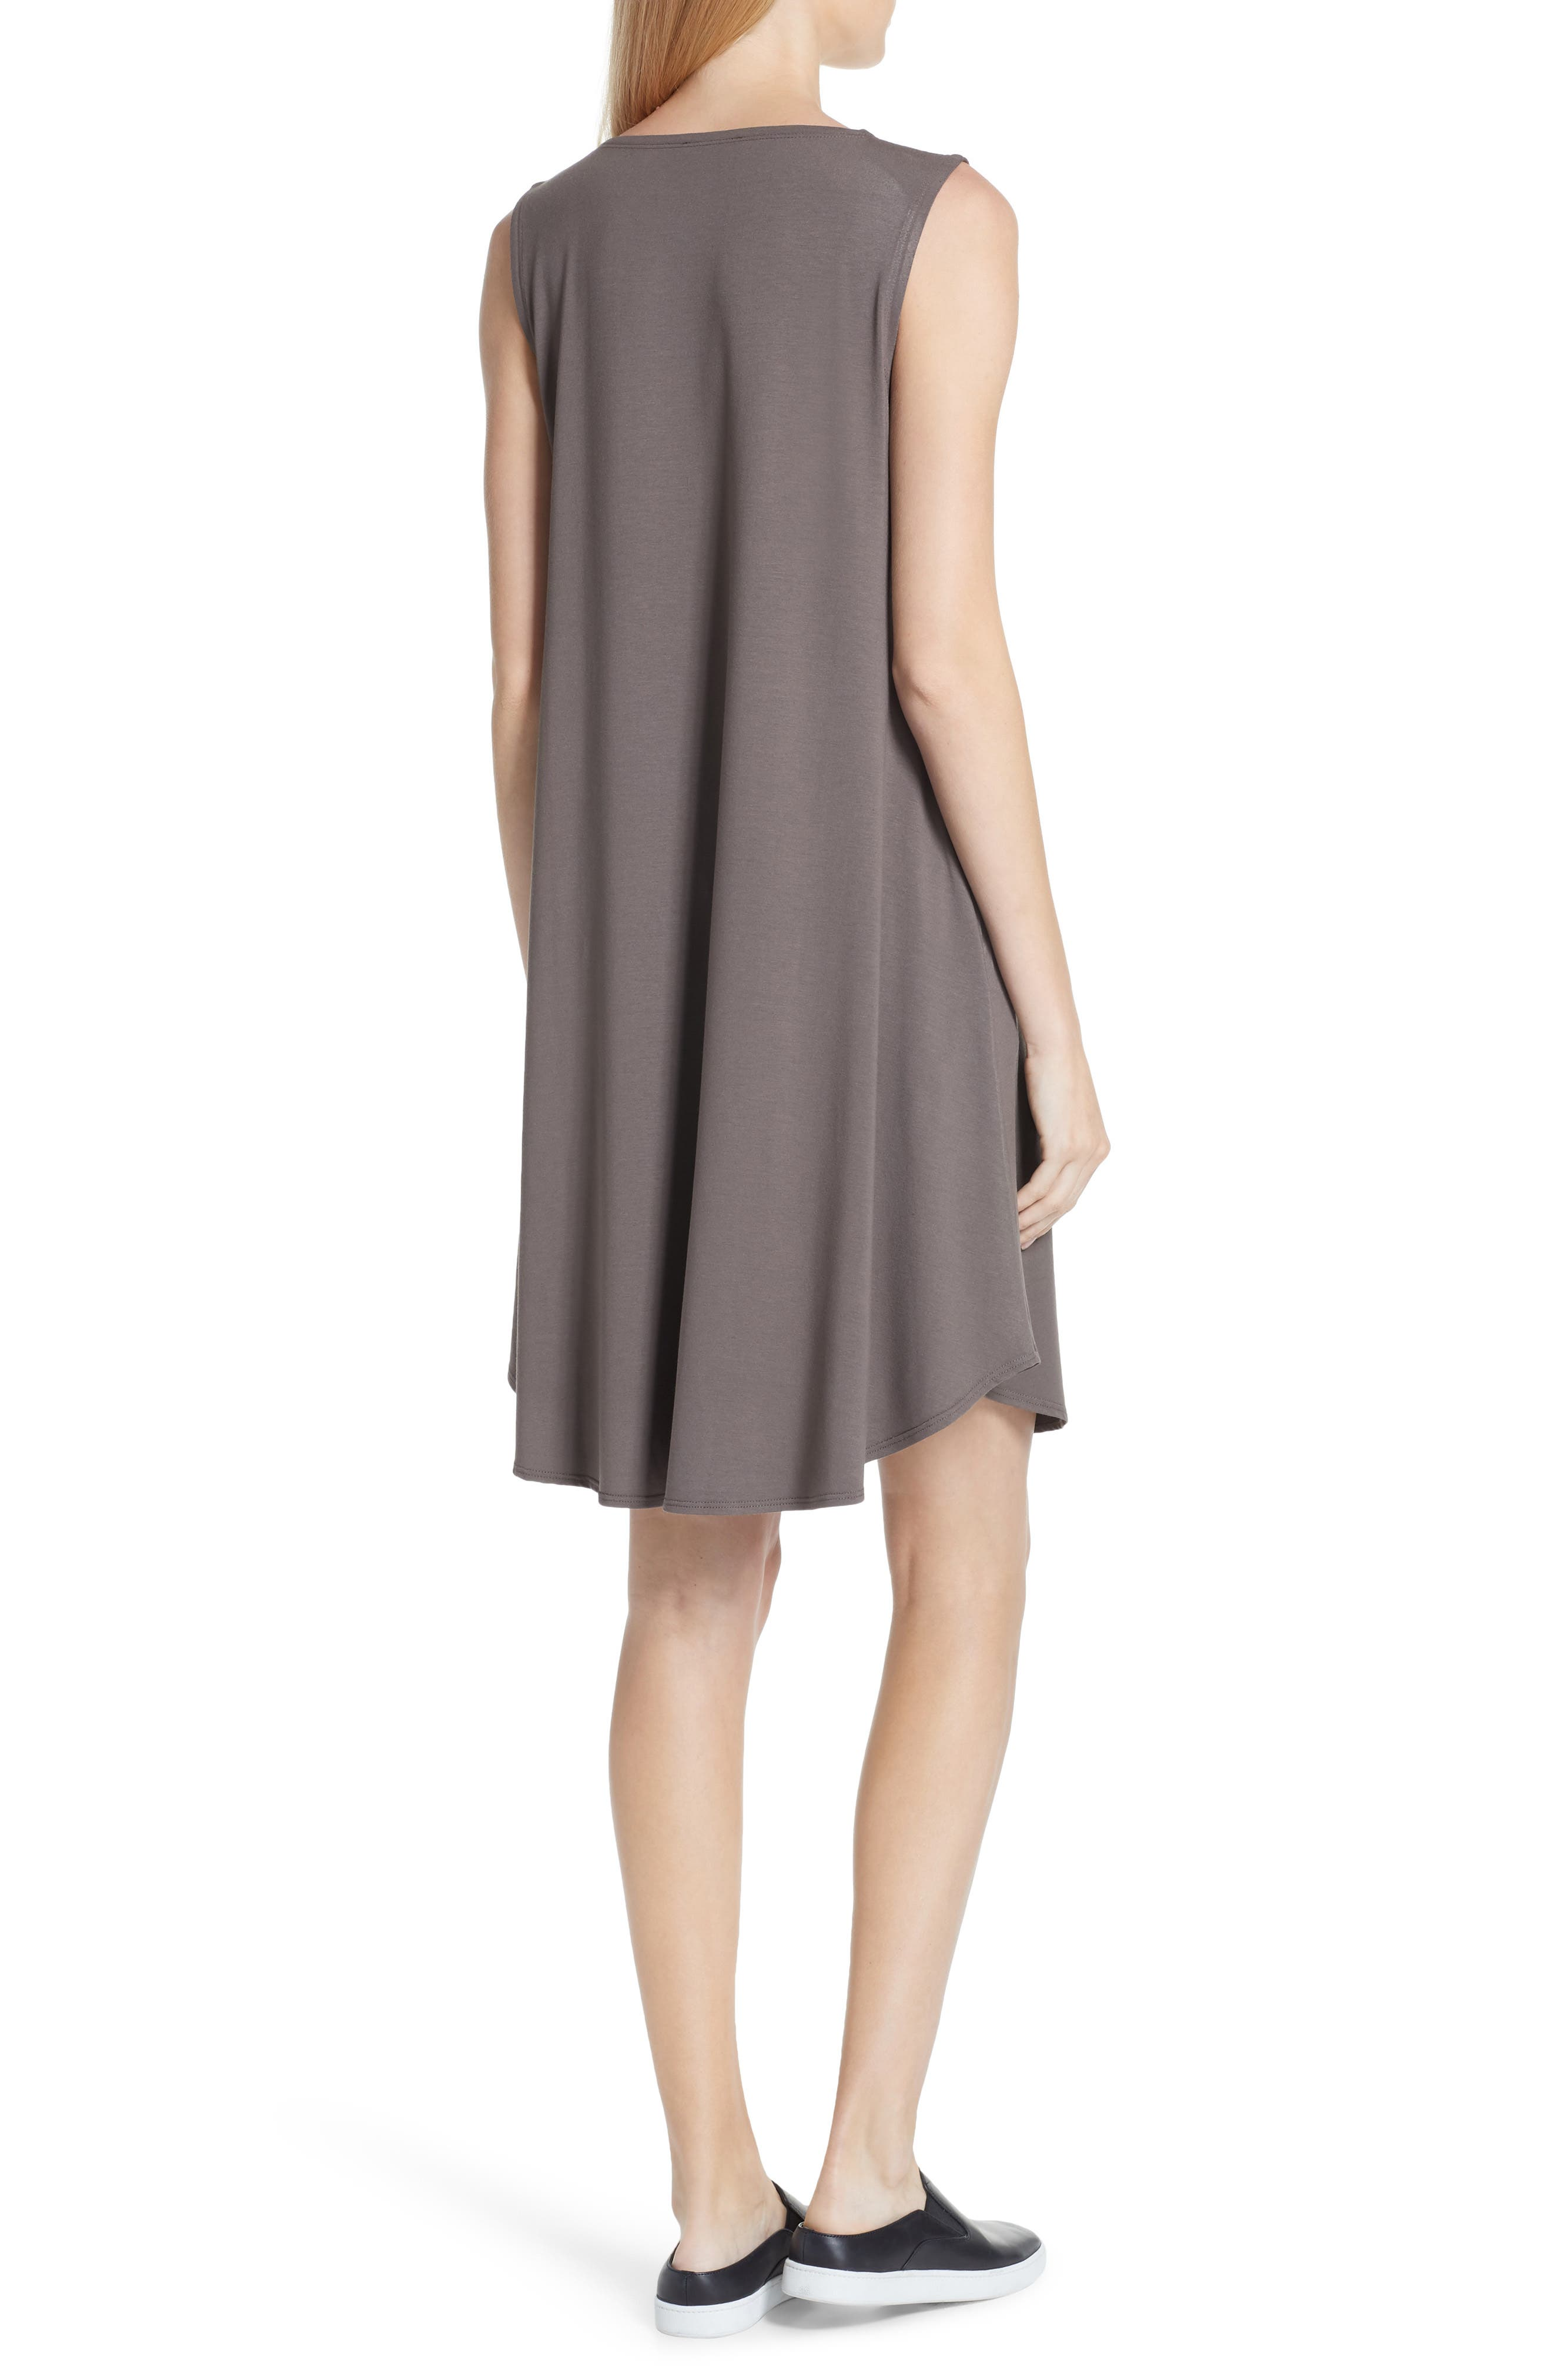 EILEEN FISHER,                             Jersey Jewel Neck Flare Dress,                             Alternate thumbnail 2, color,                             245